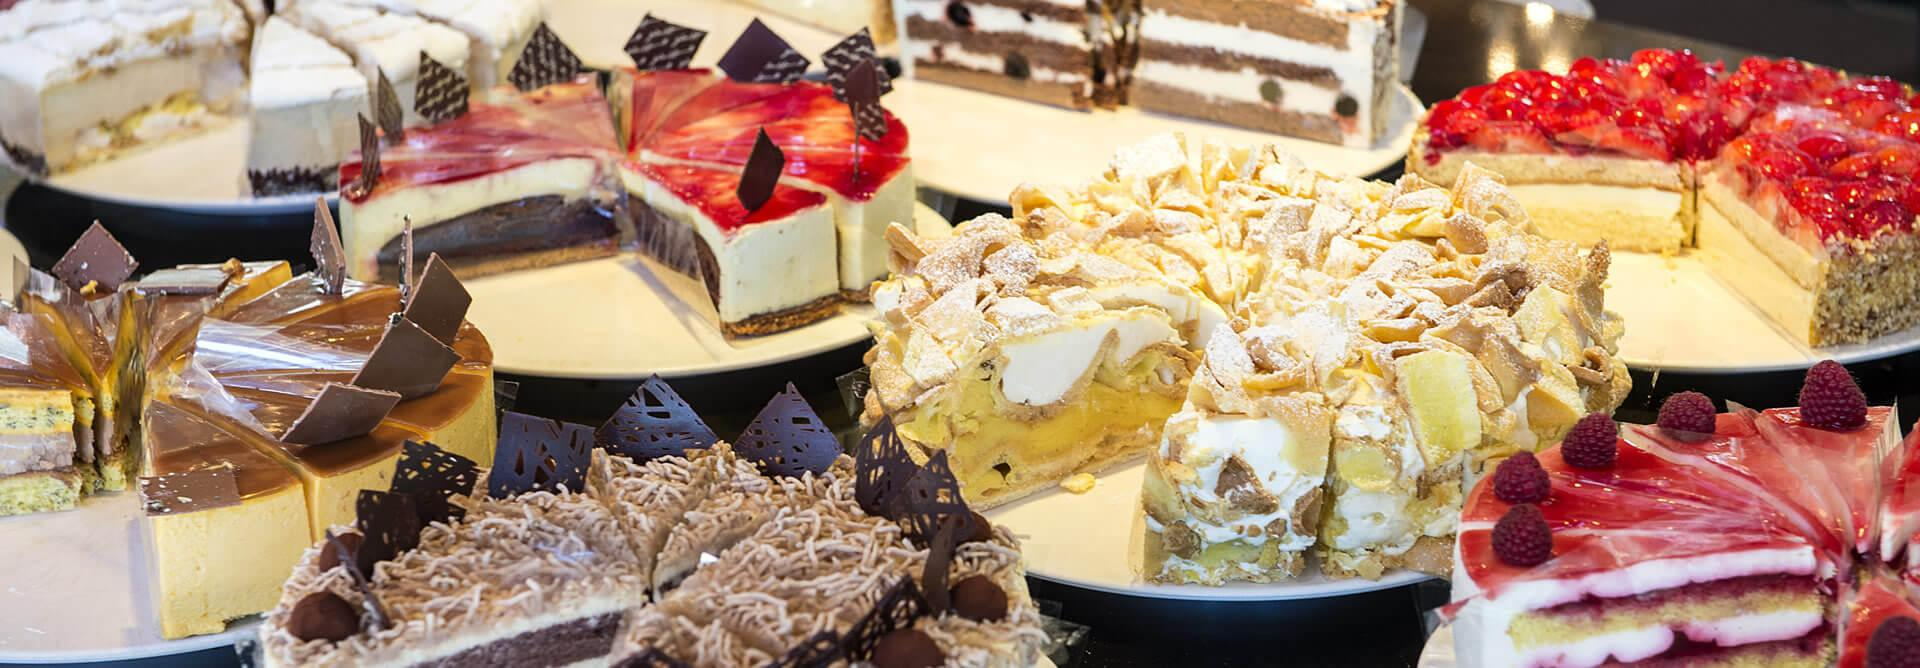 Our pastry shop in South Tyrol: sweet temptations